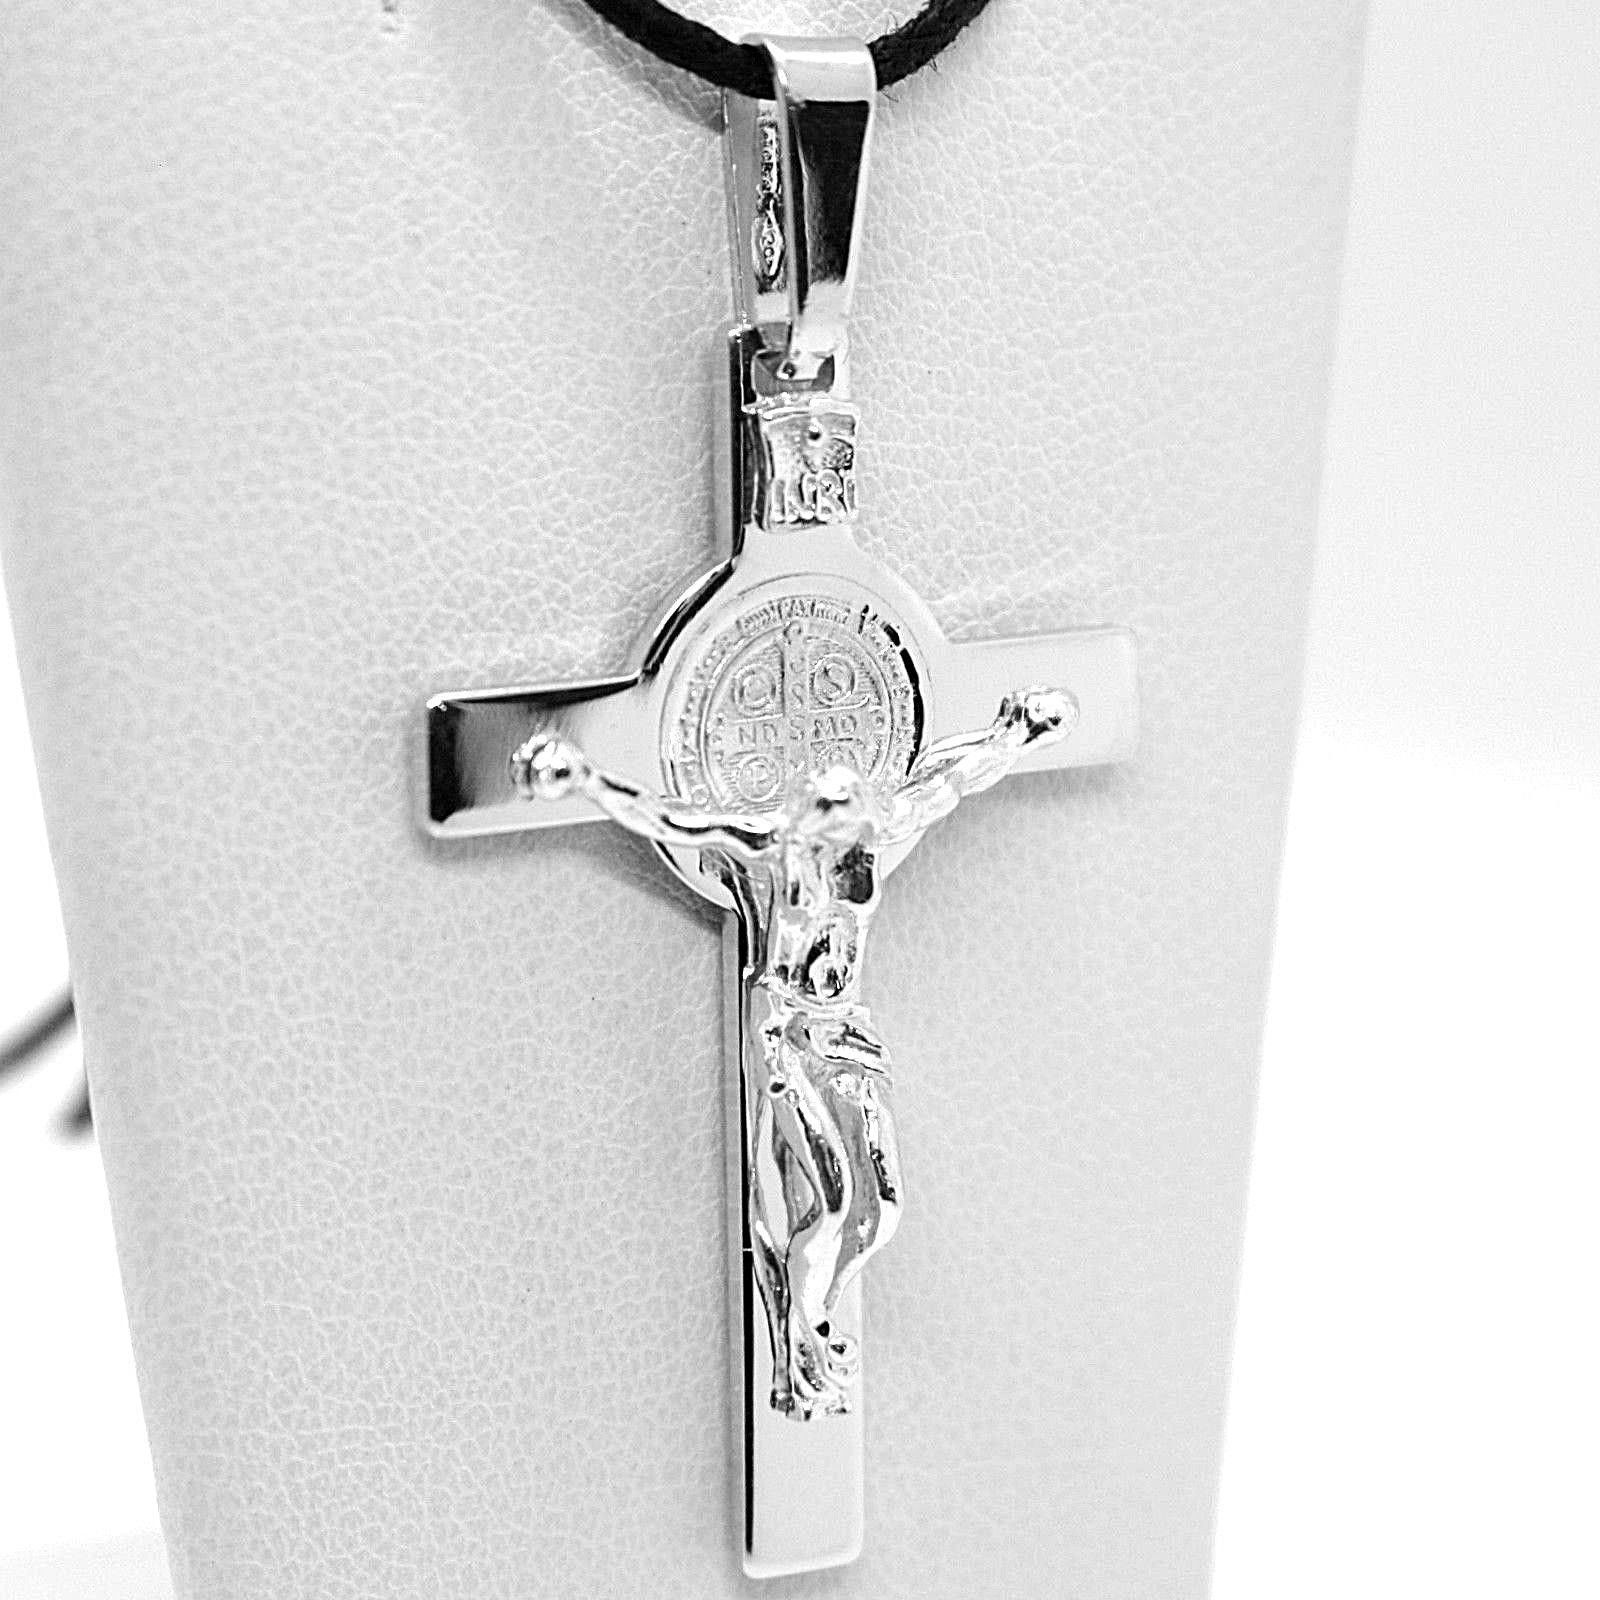 18K WHITE GOLD BIG CROSS WITH JESUS & SAINT BENEDICT MEDAL MADE IN ITALY, 44 mm